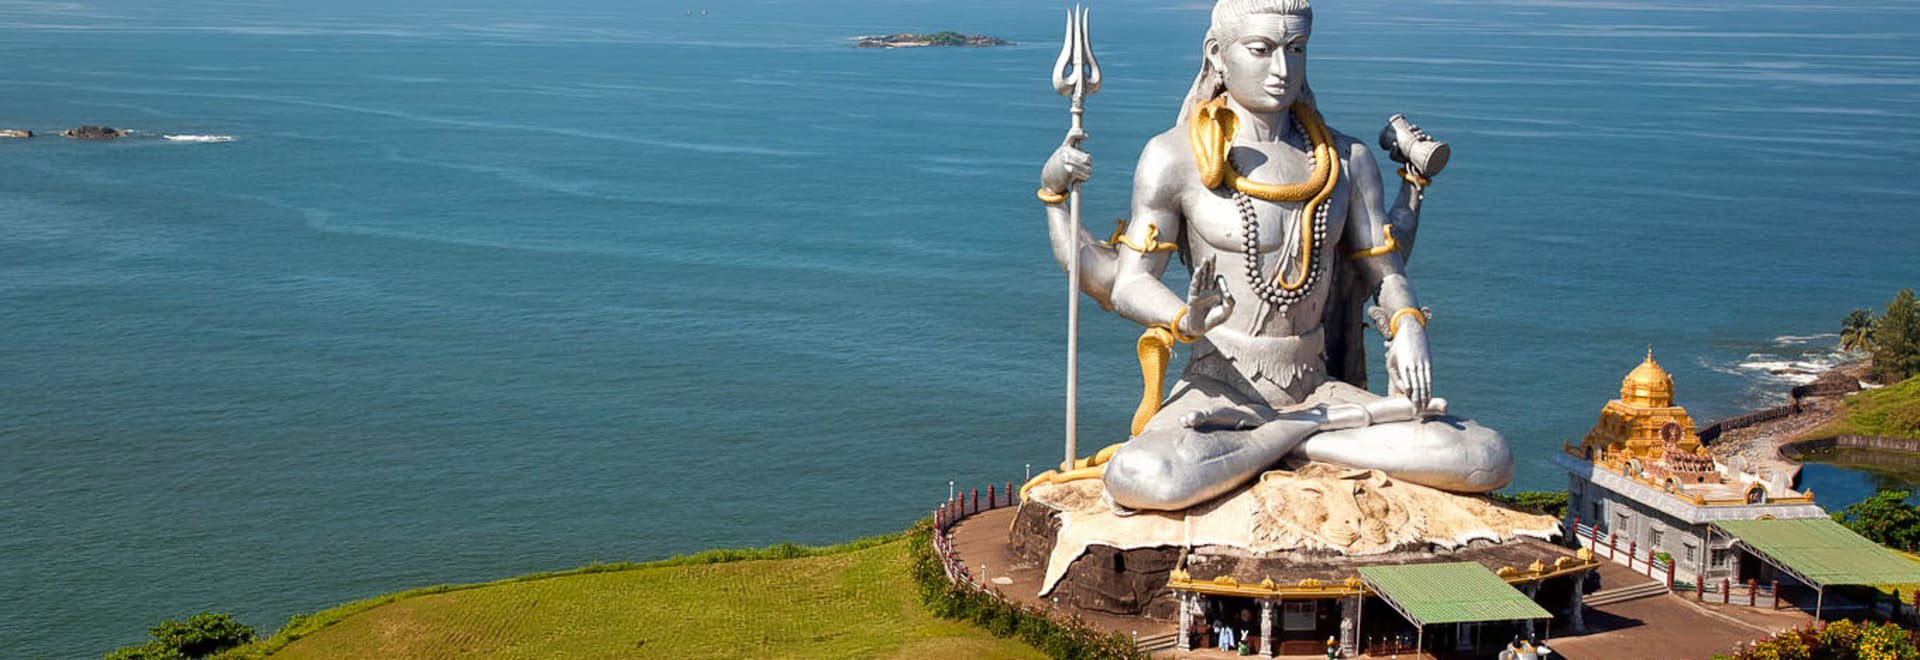 1492182966_lord_shiva_in_murudeshwara_temple.jpg